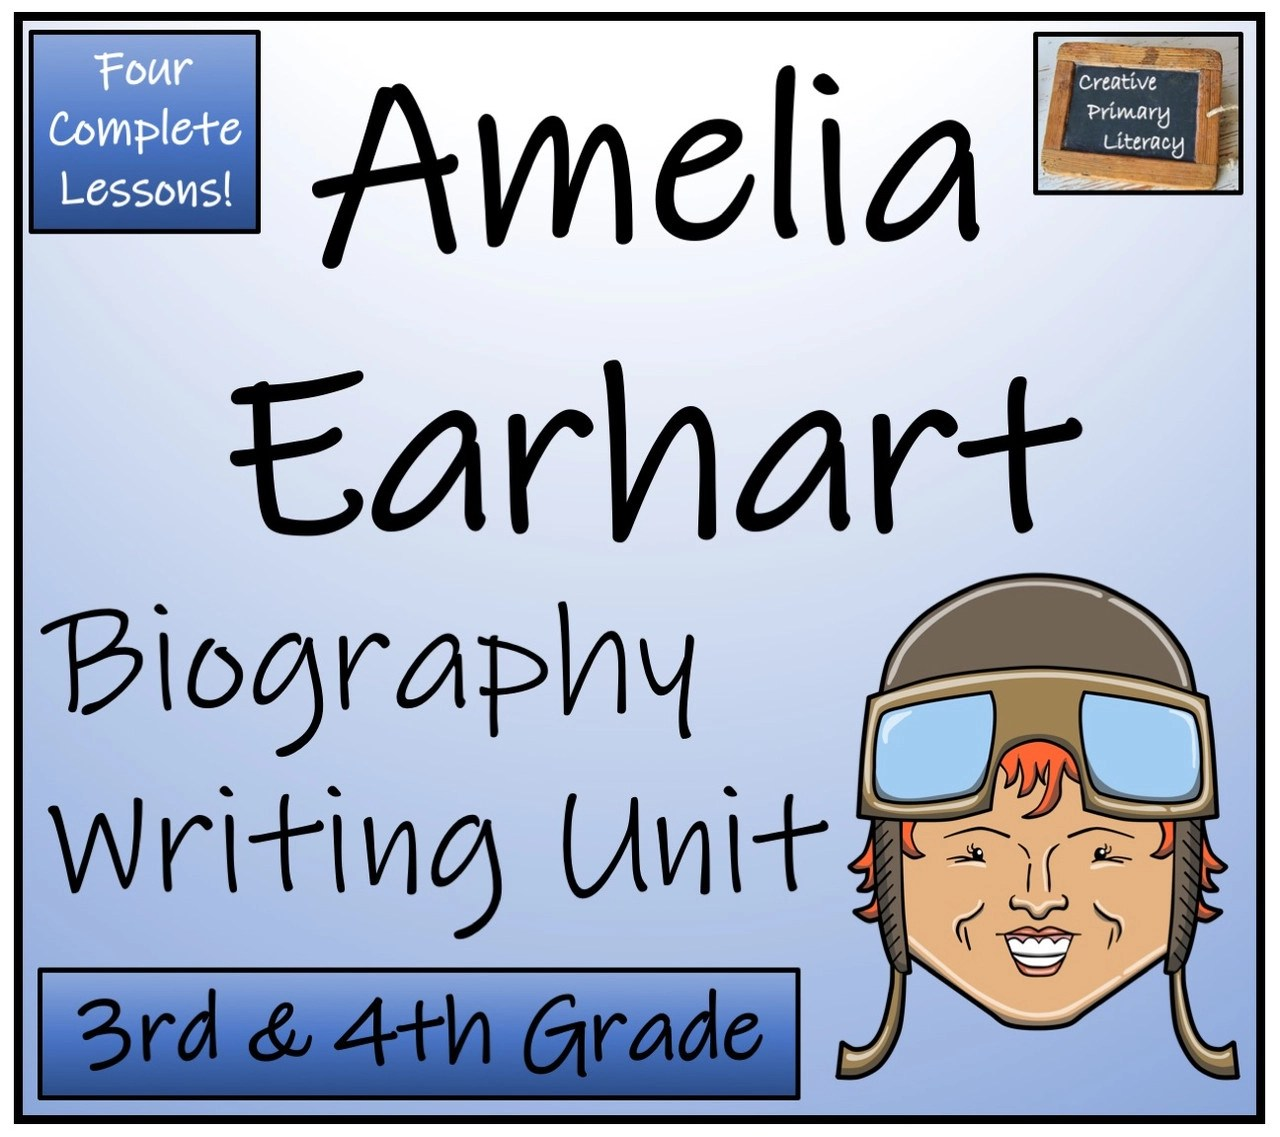 hight resolution of Amelia Earhart - 3rd \u0026 4th Grade Biography Writing Activity - Amped Up  Learning